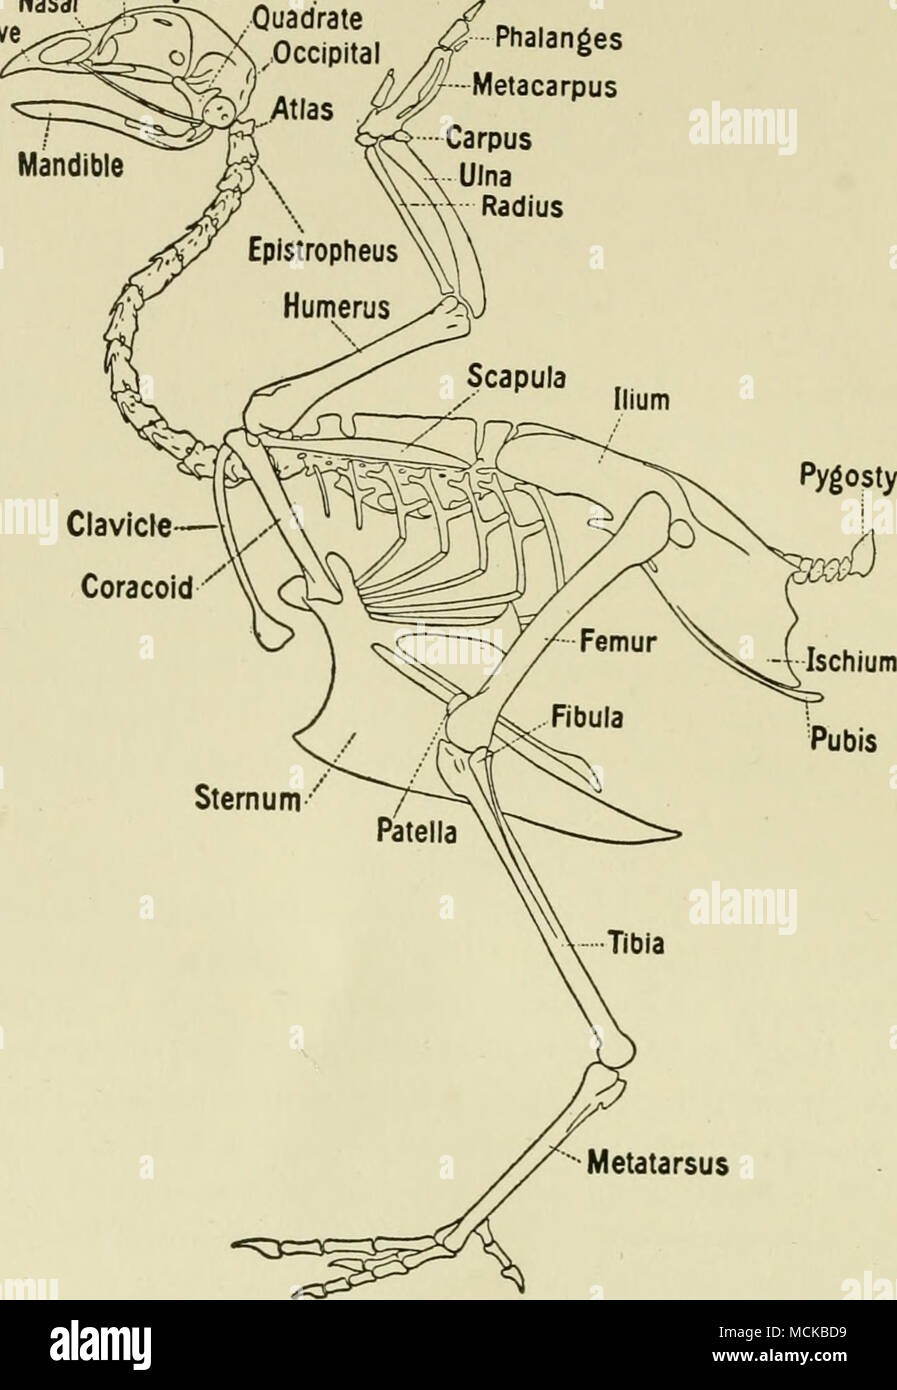 Metatarsus Fig 1 The Skeleton Of The Fowl Bradley The Thoracic